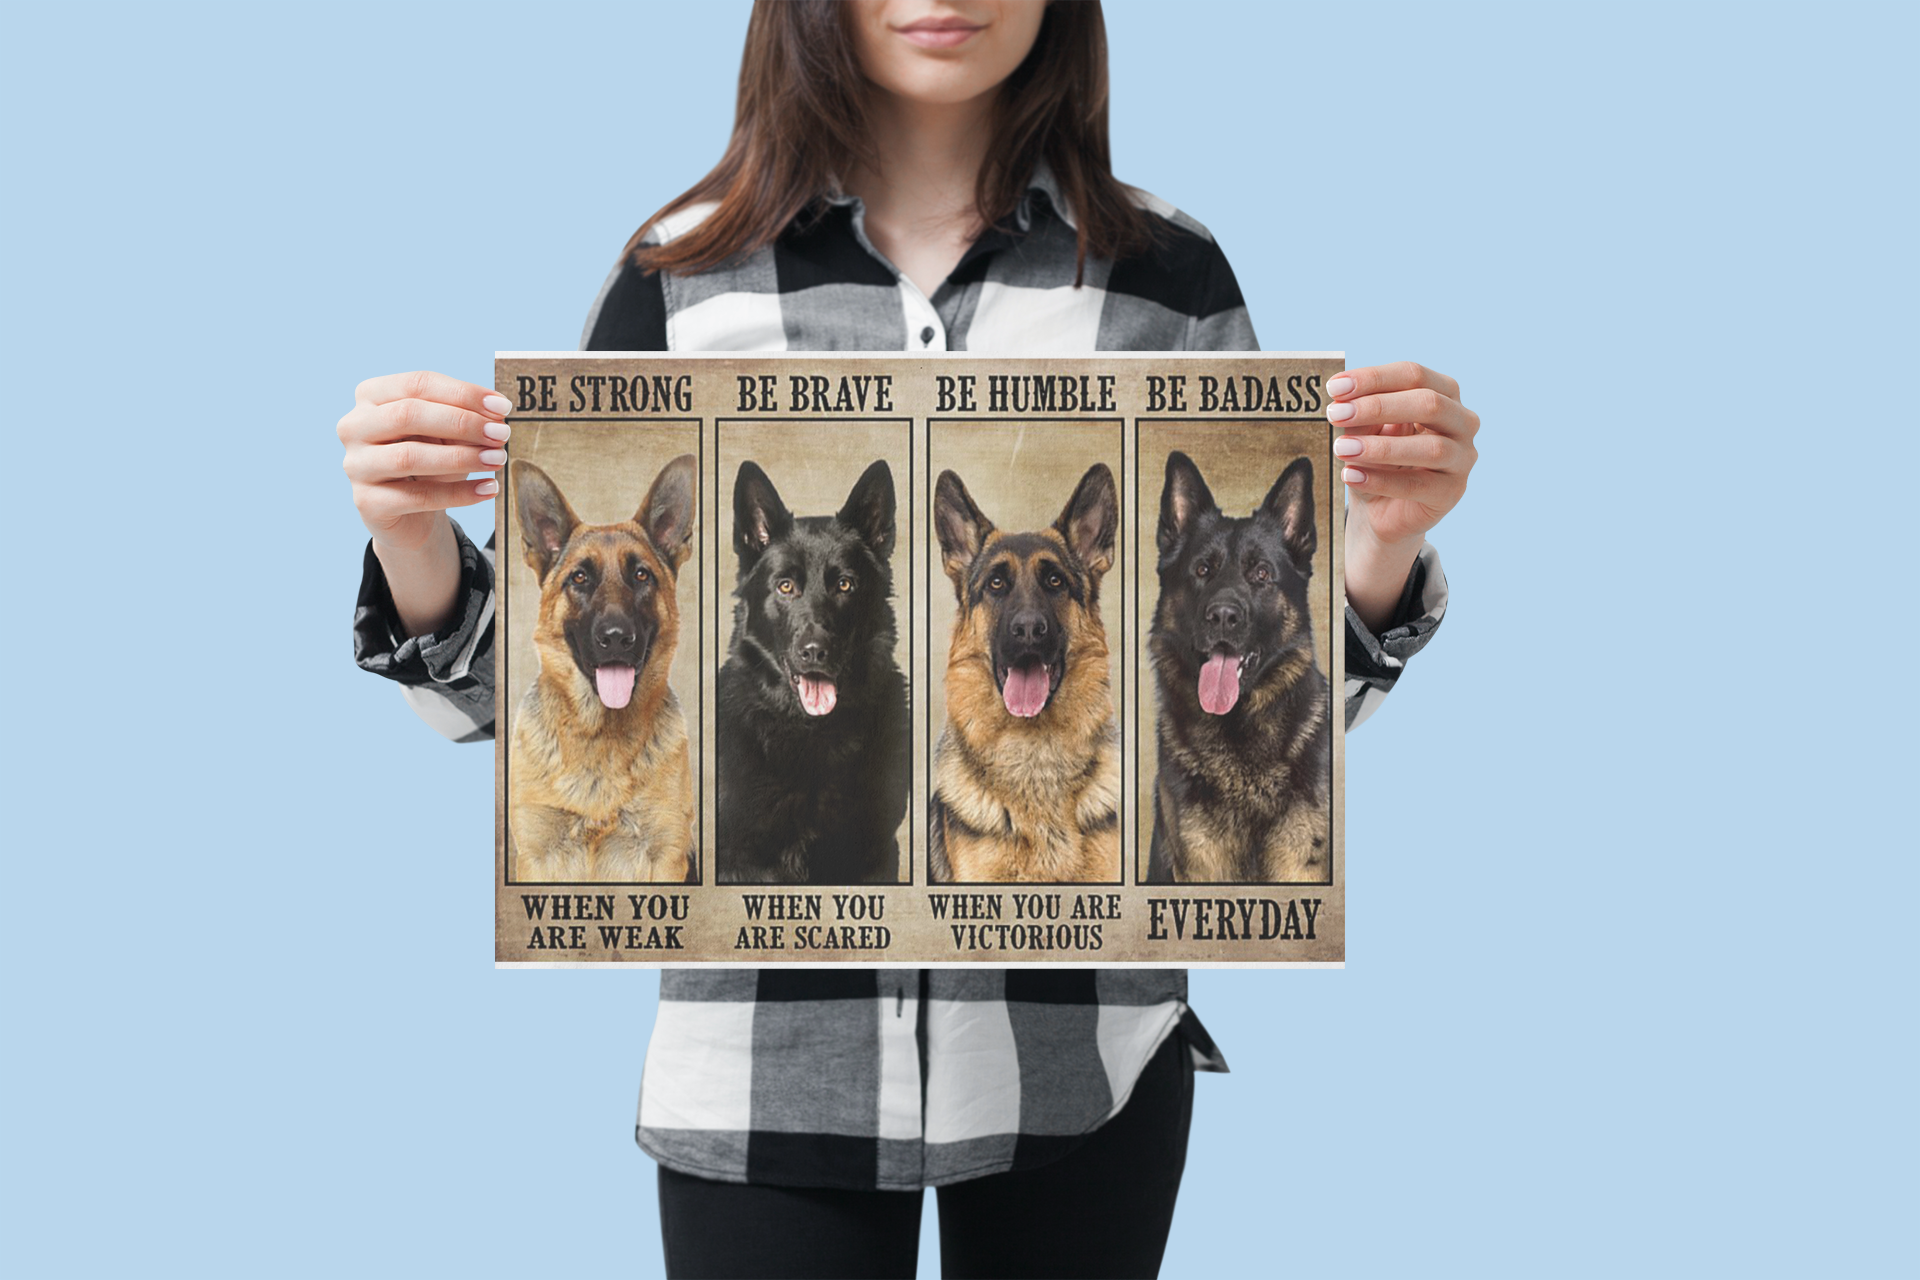 German Sherpherd be strong be brave be humble be badass poster 1